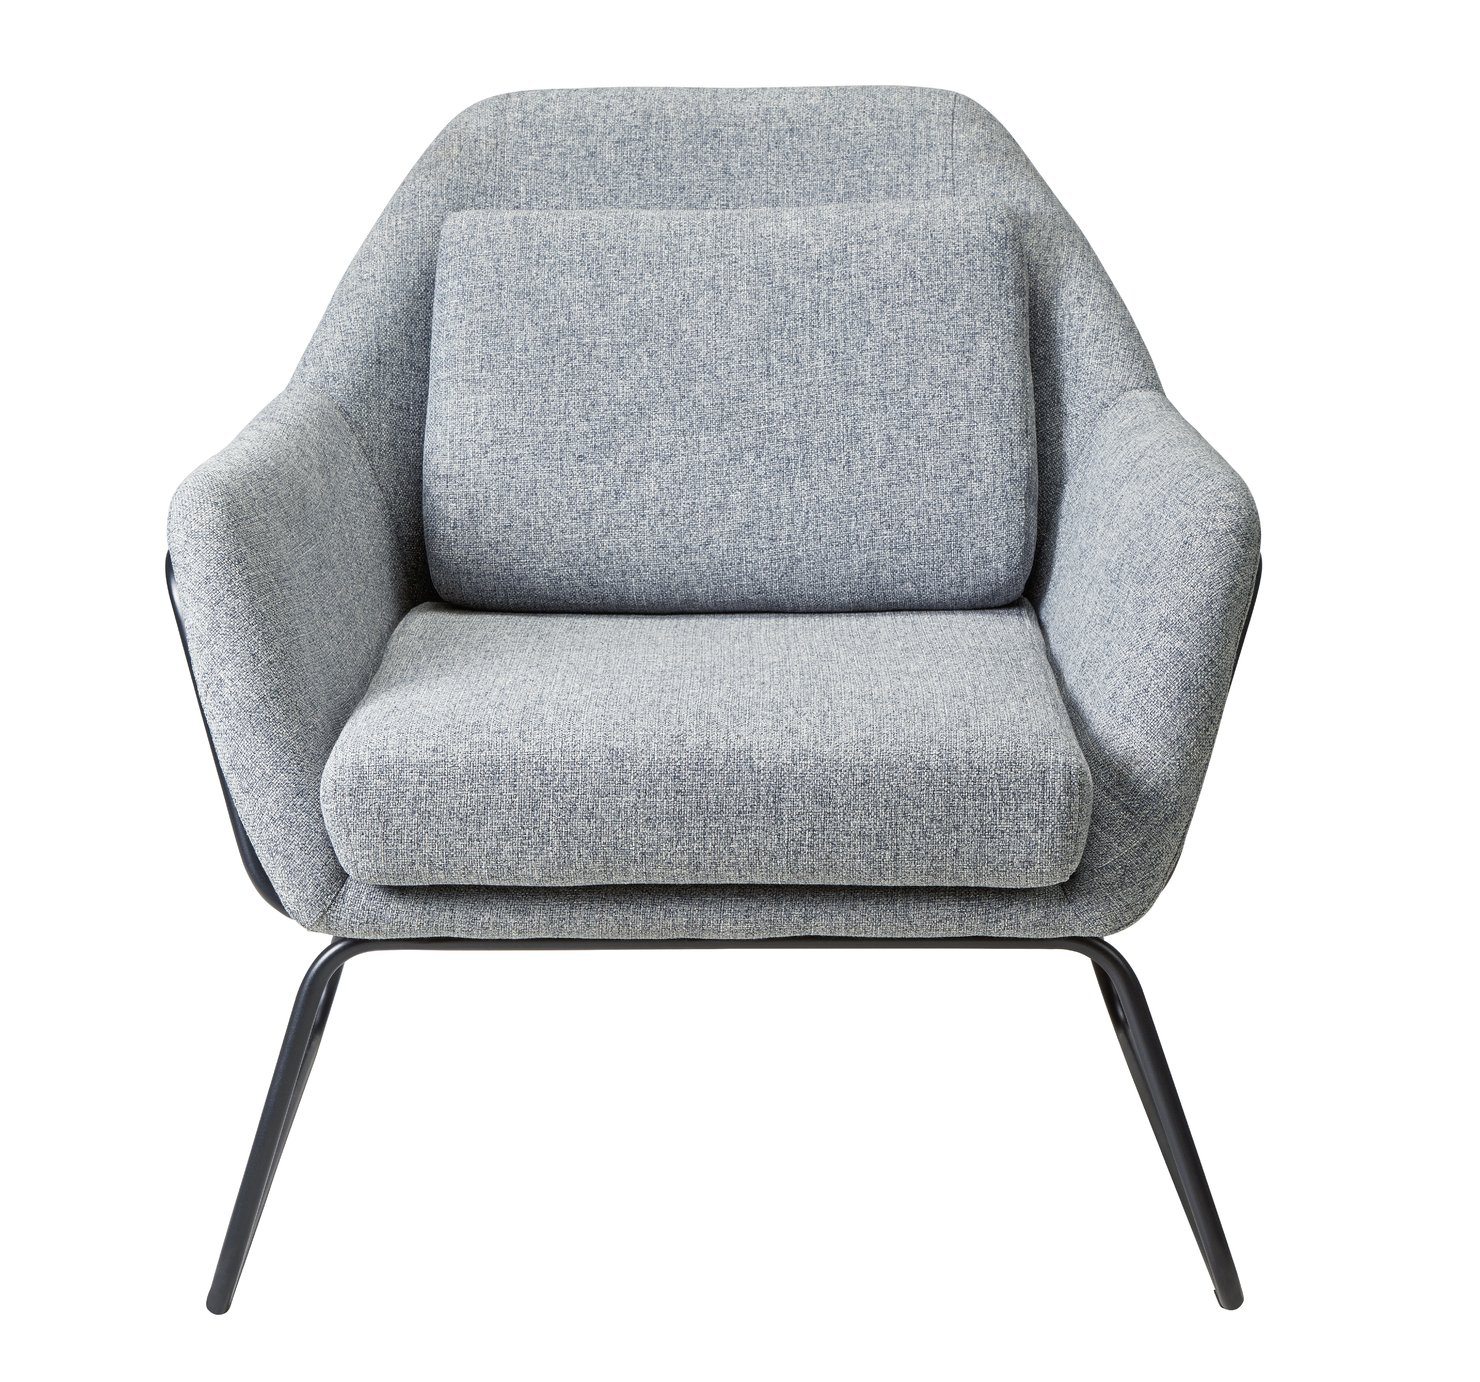 Argos Home Juliette Fabric Accent Chair - Light Grey